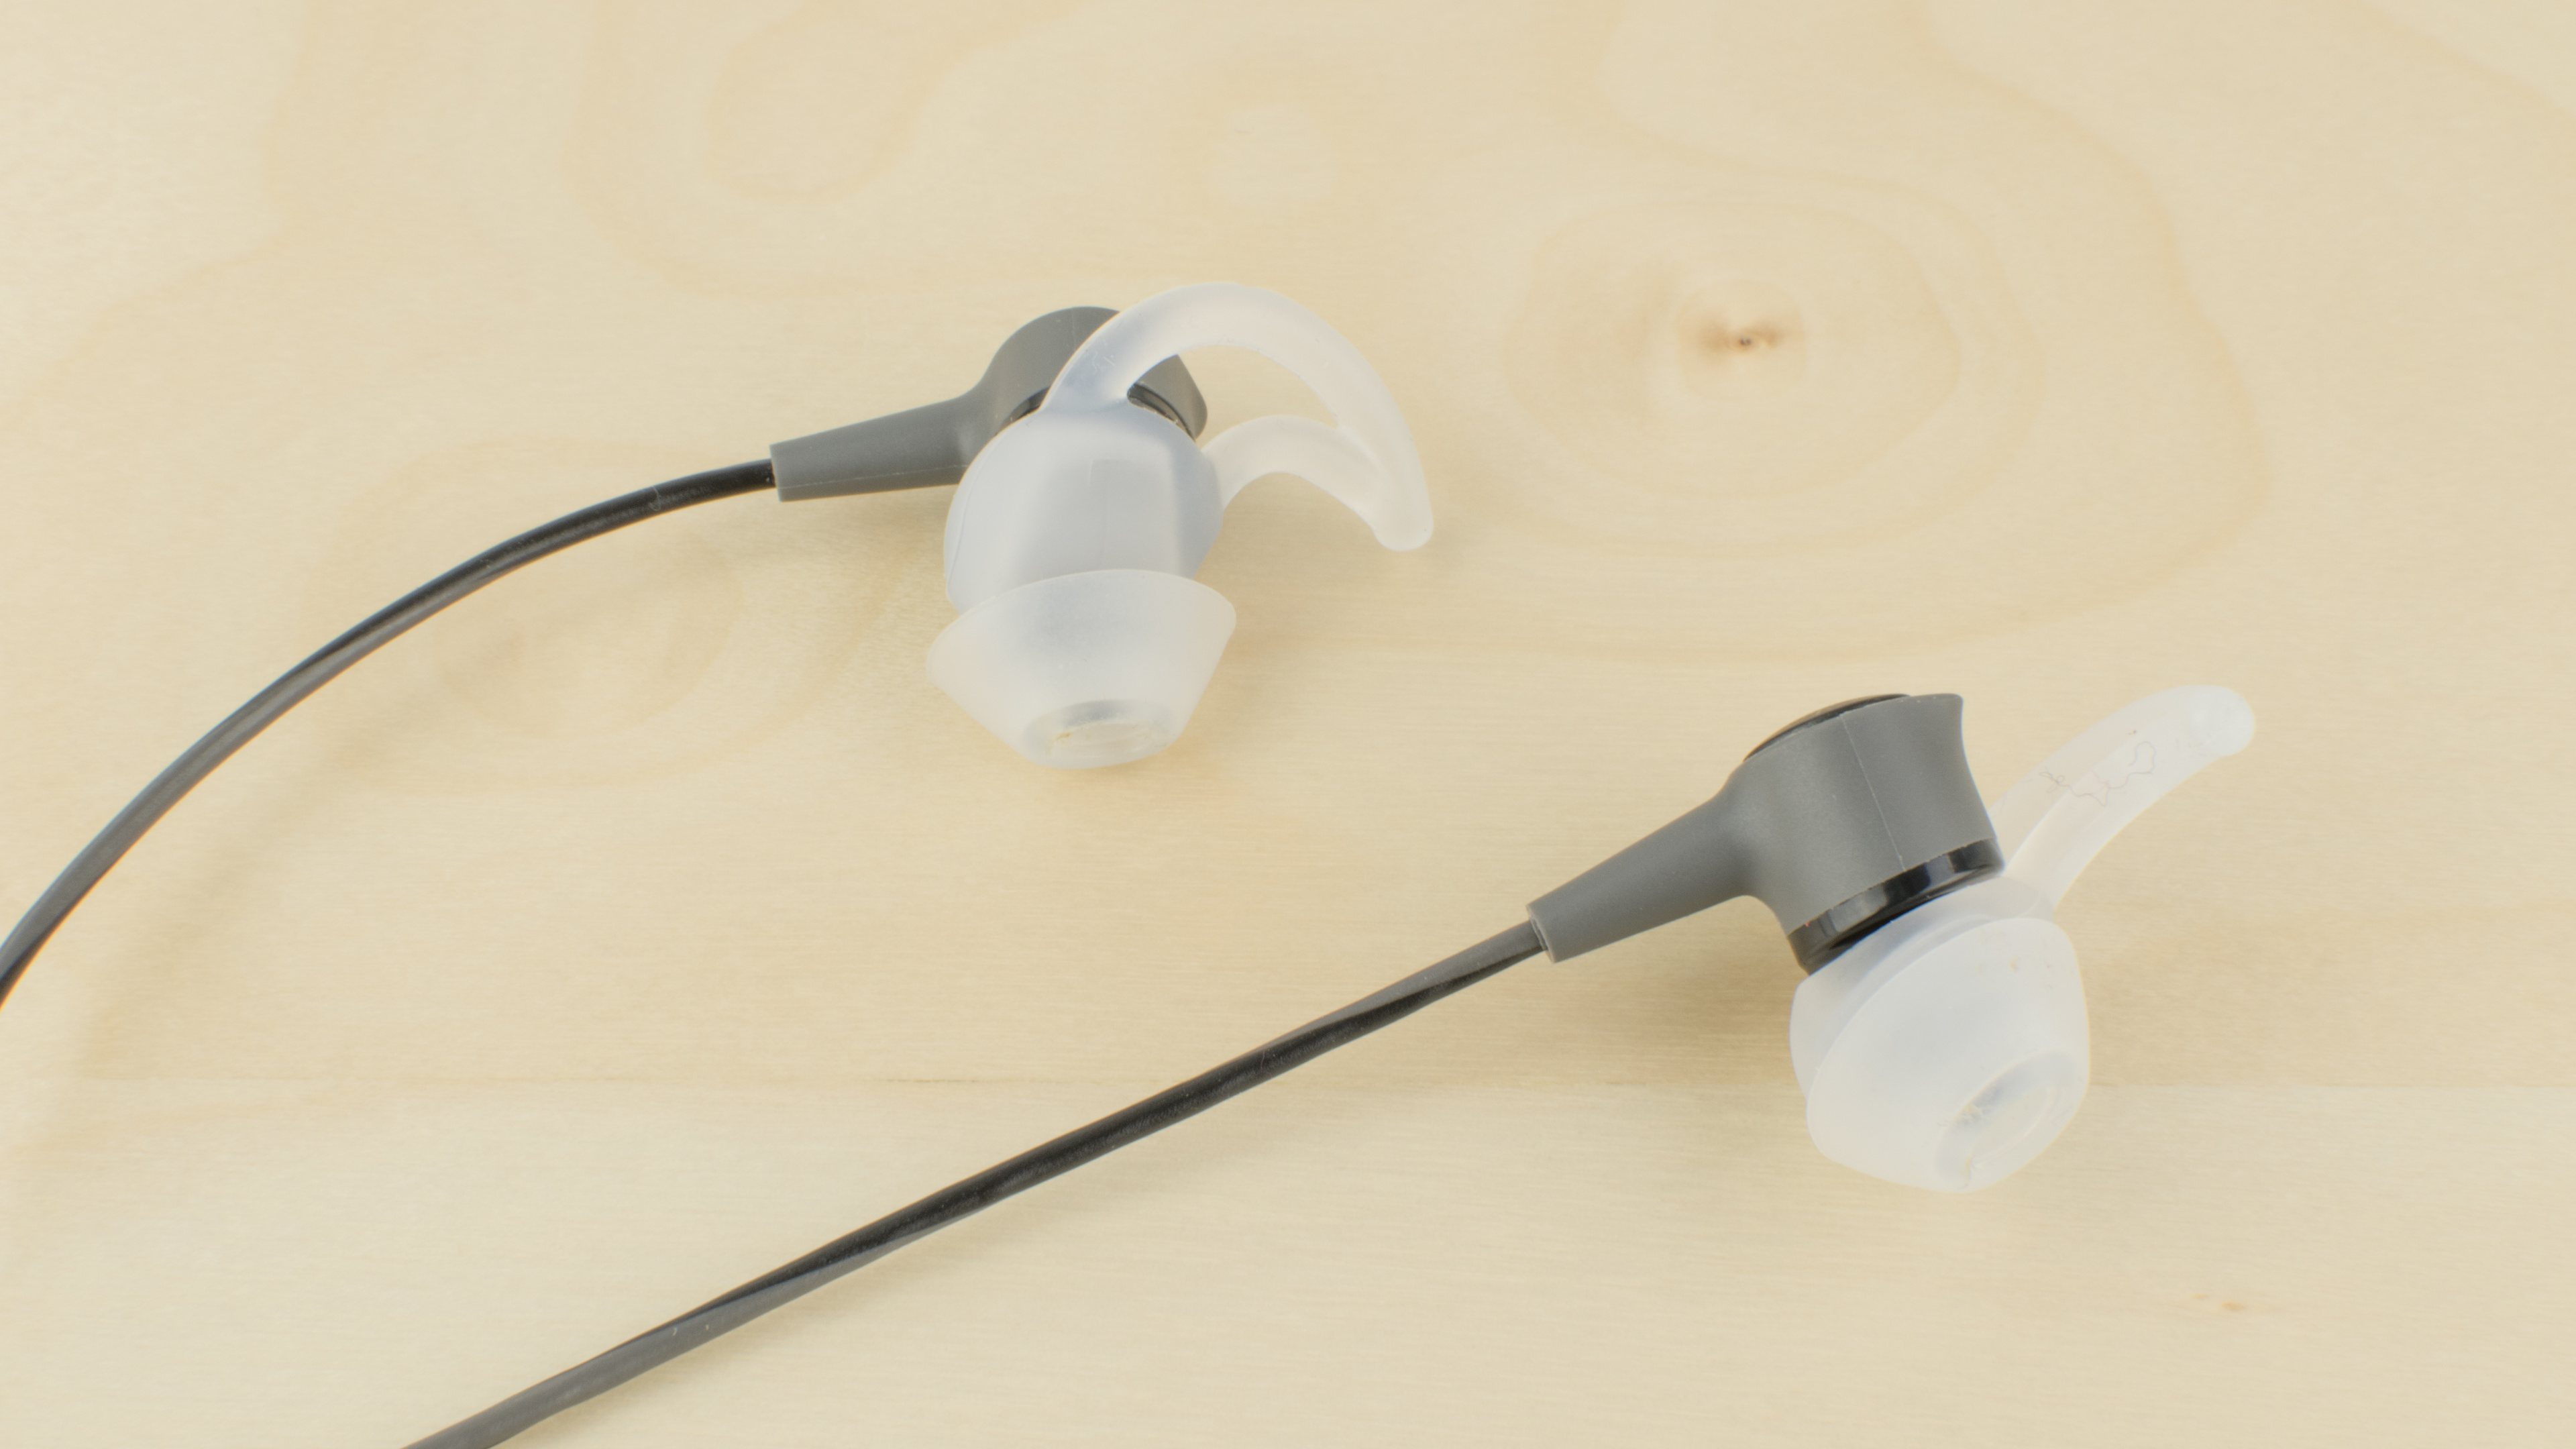 Exercise earbuds - bose soundtrue earbuds